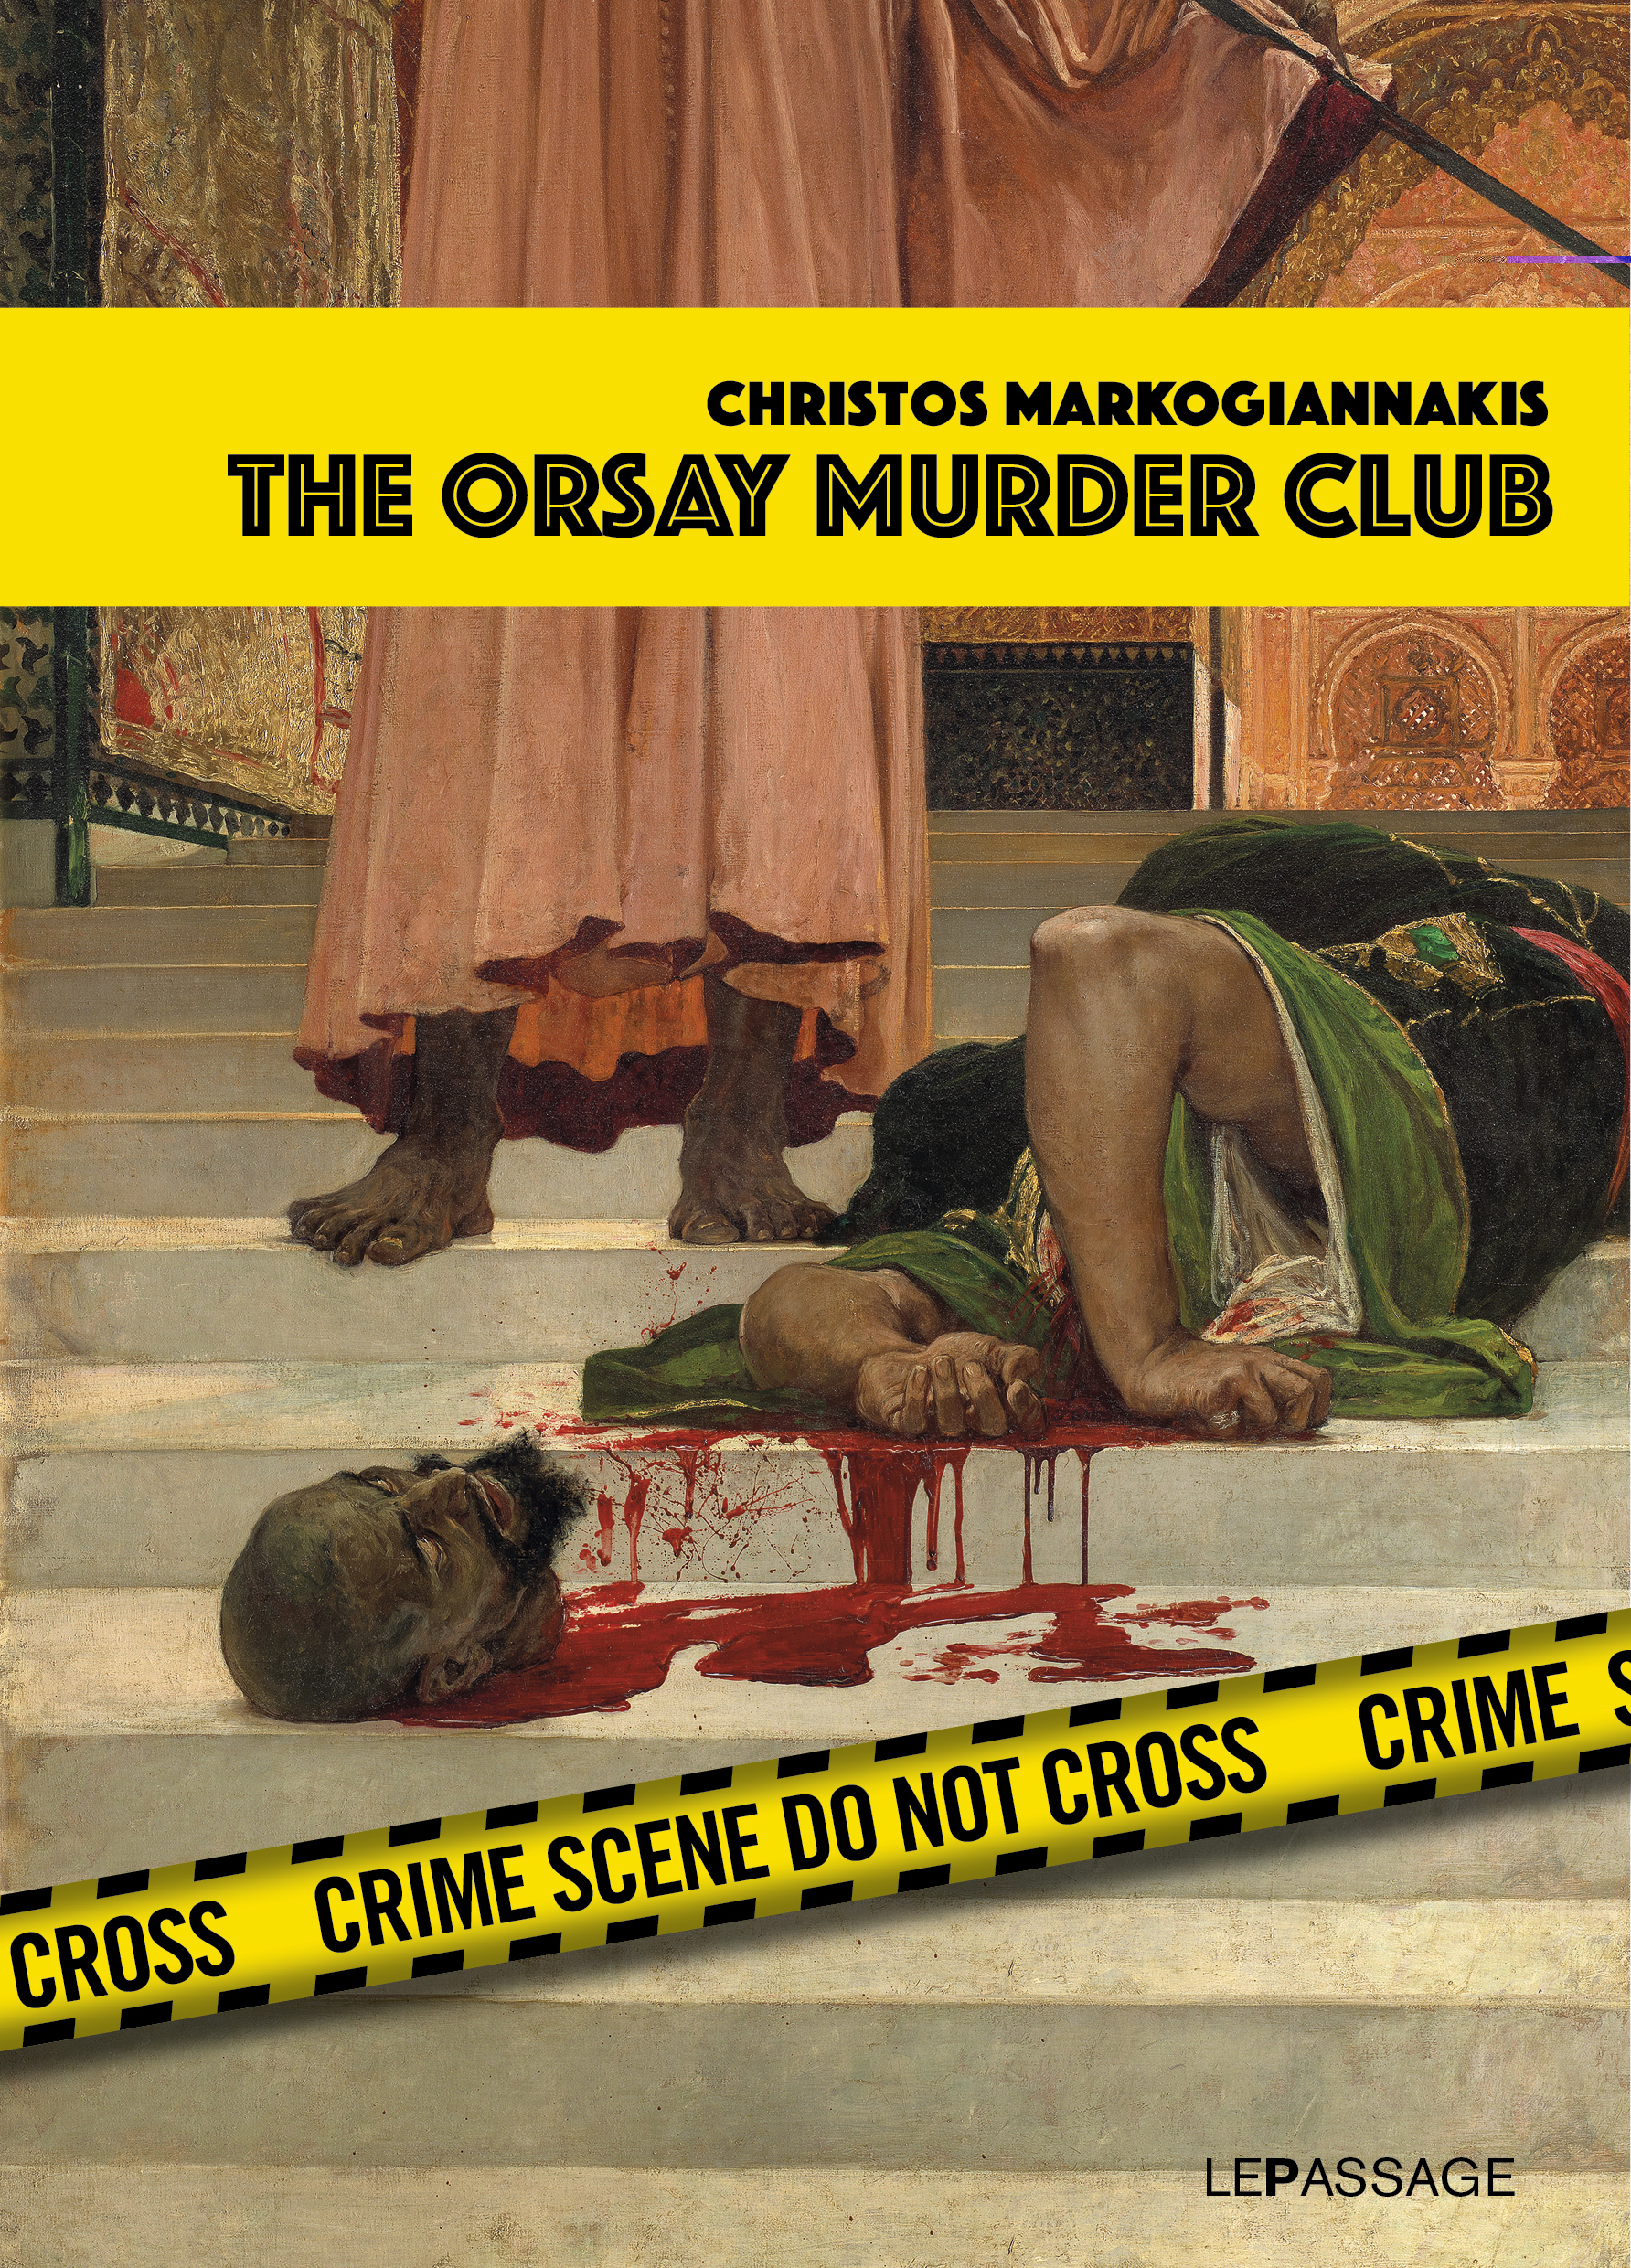 The_Orsay_Murder_Club#133B8